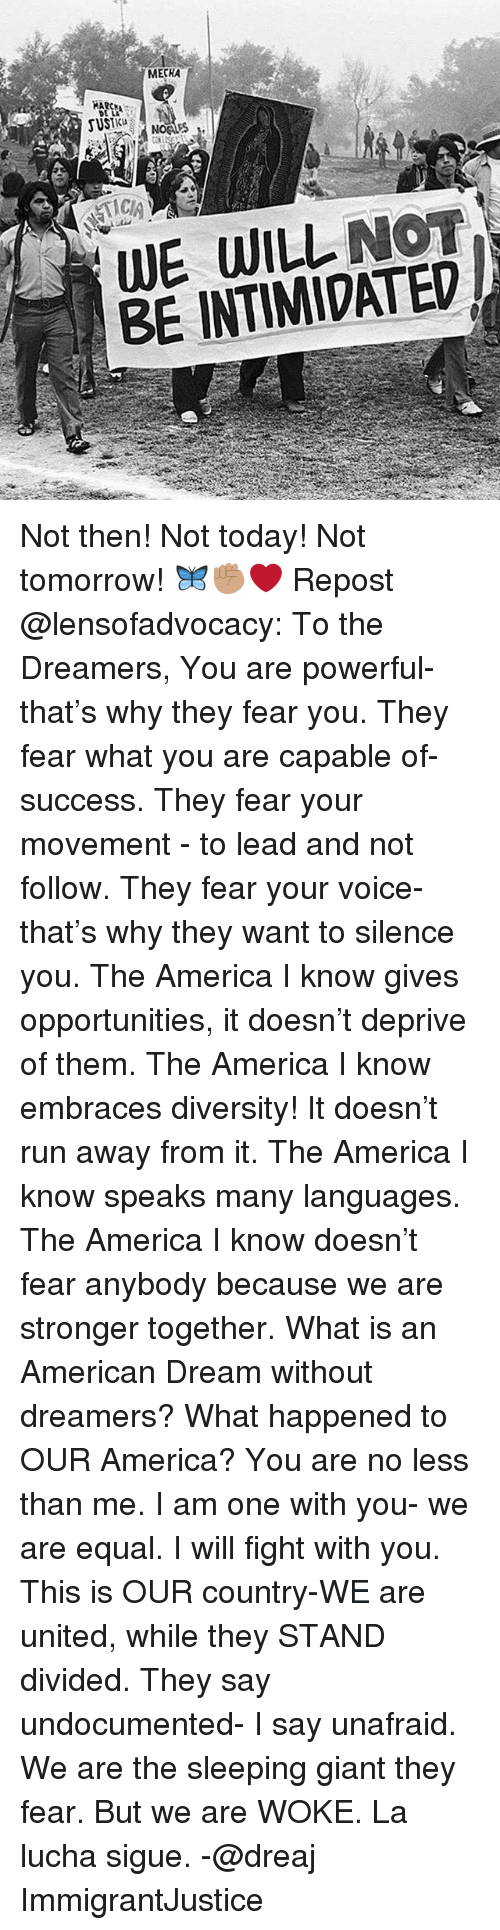 Equalism: MECHA  WE WILL NOT  BE INTIMIDATED Not then! Not today! Not tomorrow! 🦋✊🏽❤ Repost @lensofadvocacy: To the Dreamers, You are powerful- that's why they fear you. They fear what you are capable of- success. They fear your movement - to lead and not follow. They fear your voice- that's why they want to silence you. The America I know gives opportunities, it doesn't deprive of them. The America I know embraces diversity! It doesn't run away from it. The America I know speaks many languages. The America I know doesn't fear anybody because we are stronger together. What is an American Dream without dreamers? What happened to OUR America? You are no less than me. I am one with you- we are equal. I will fight with you. This is OUR country-WE are united, while they STAND divided. They say undocumented- I say unafraid. We are the sleeping giant they fear. But we are WOKE. La lucha sigue. -@dreaj ImmigrantJustice